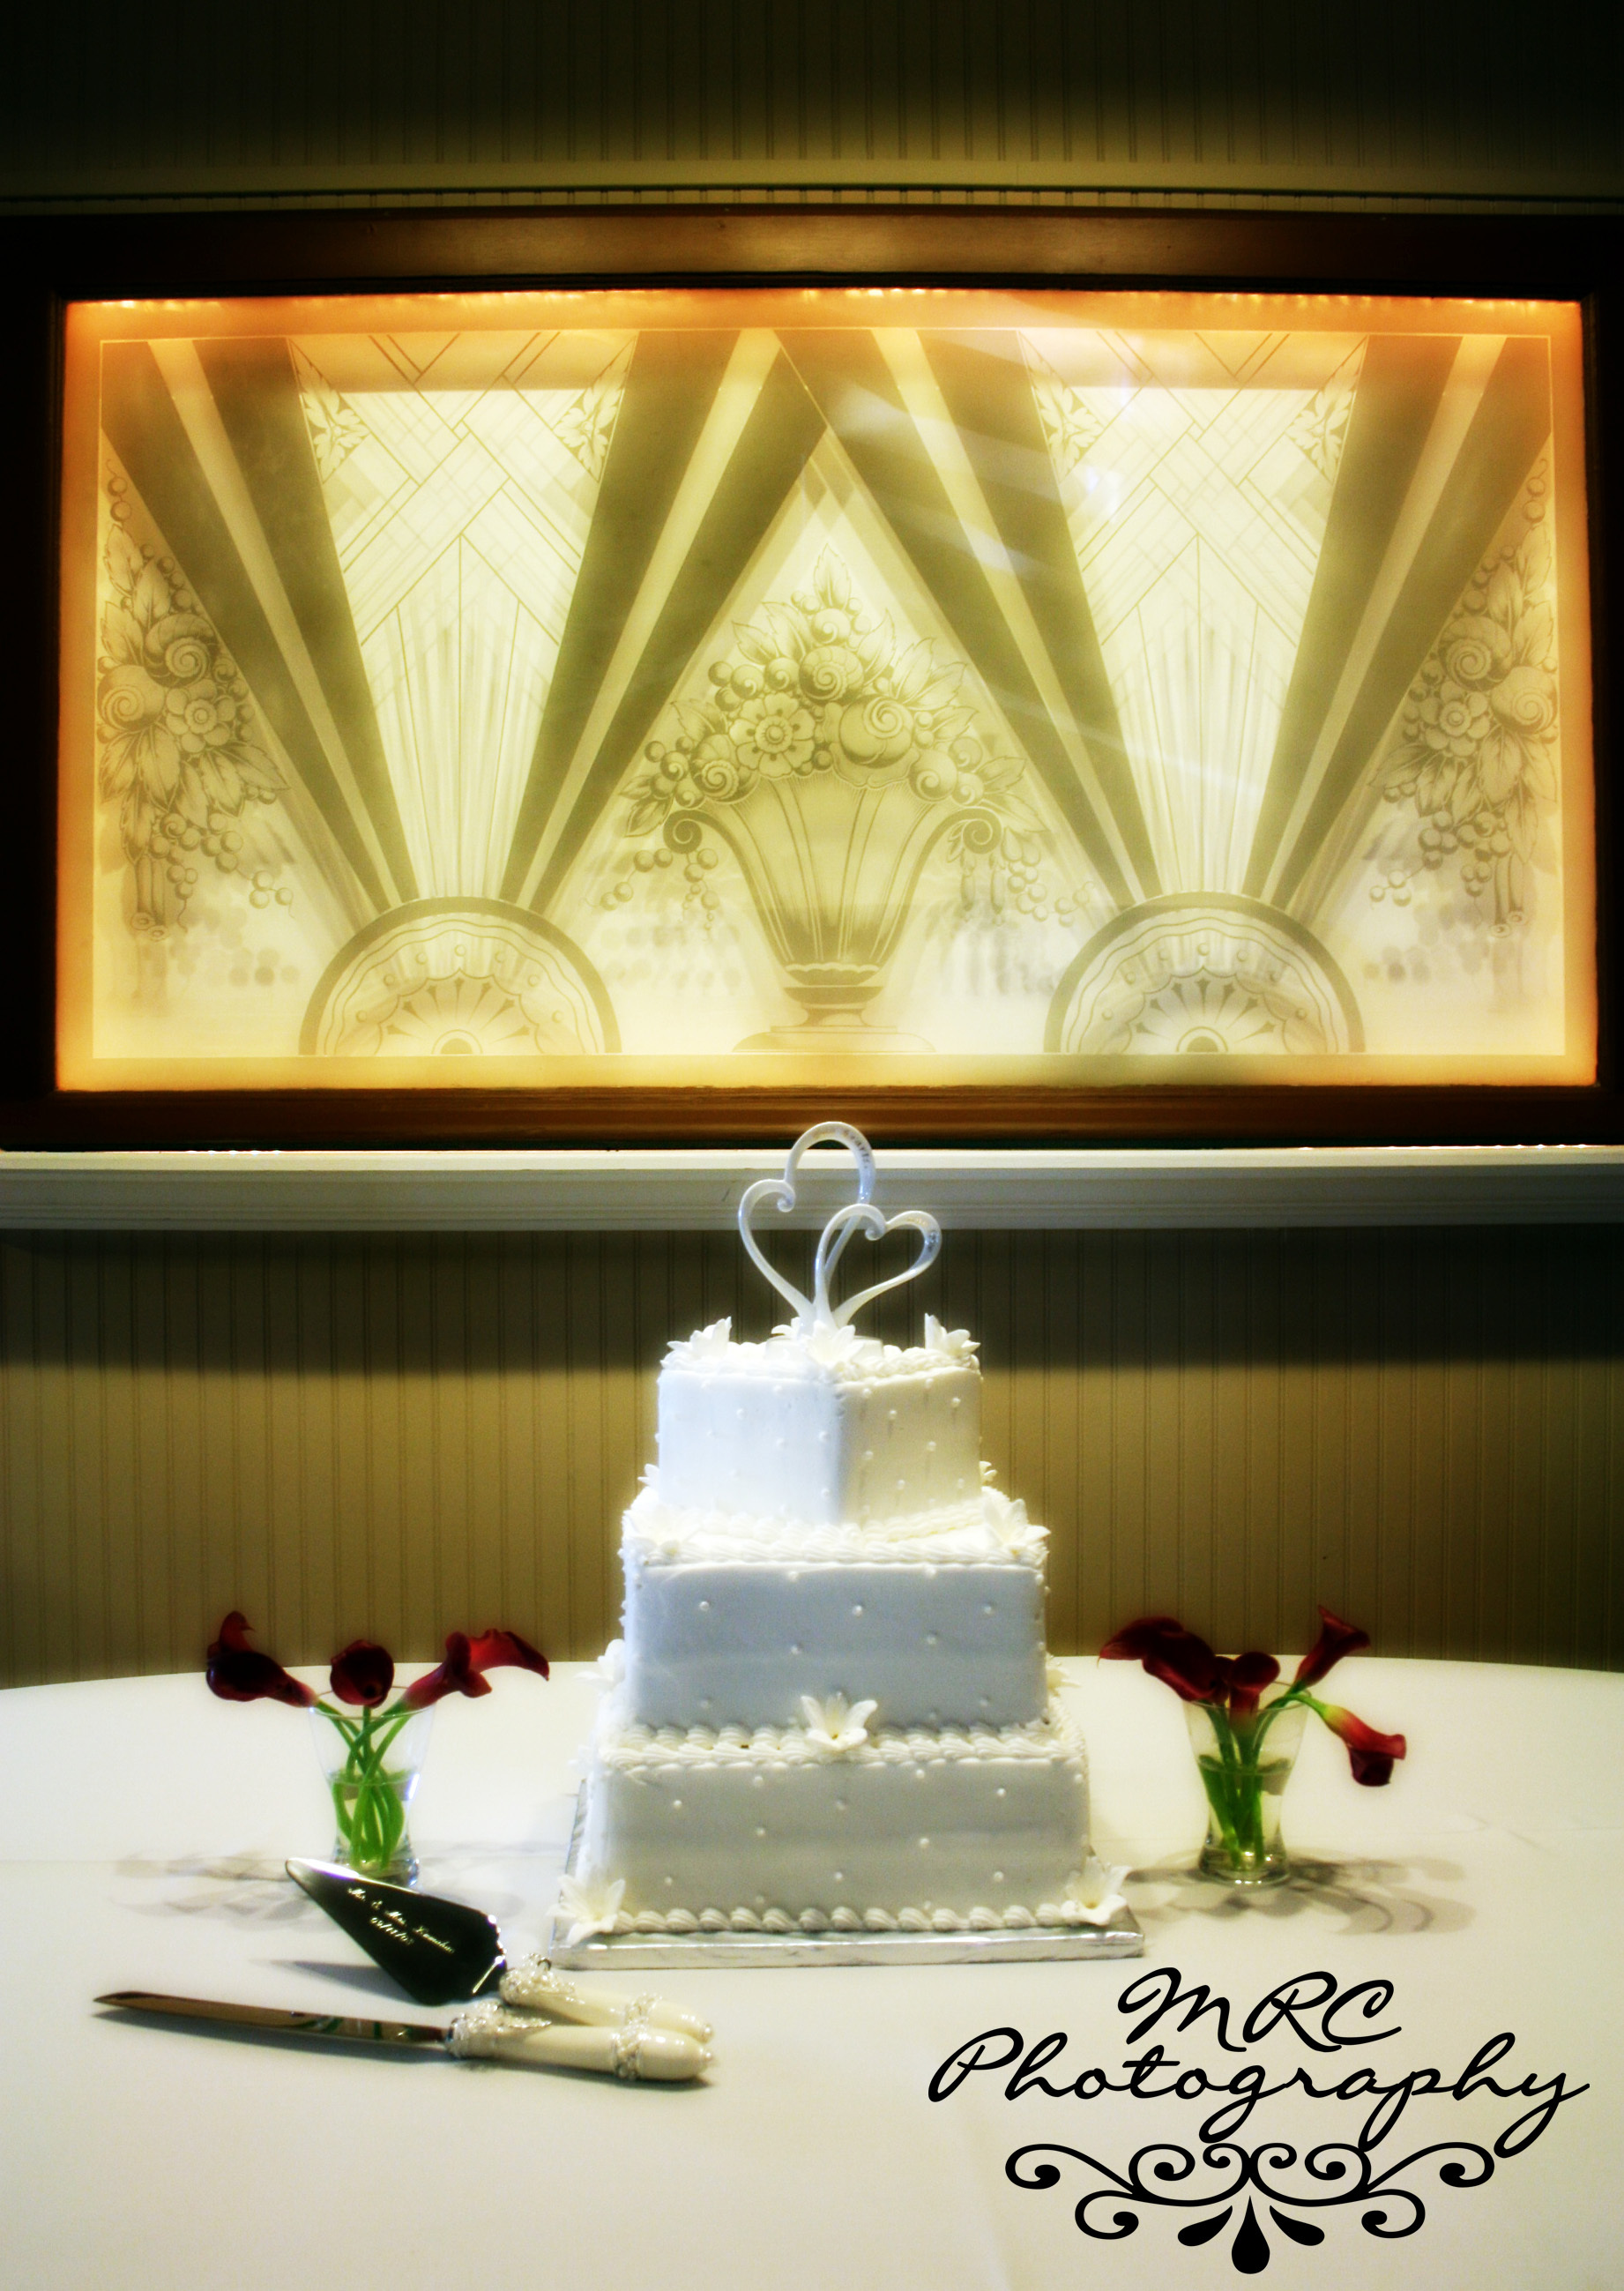 Inspiration, Cakes, white, gold, cake, Board, Mrc photography